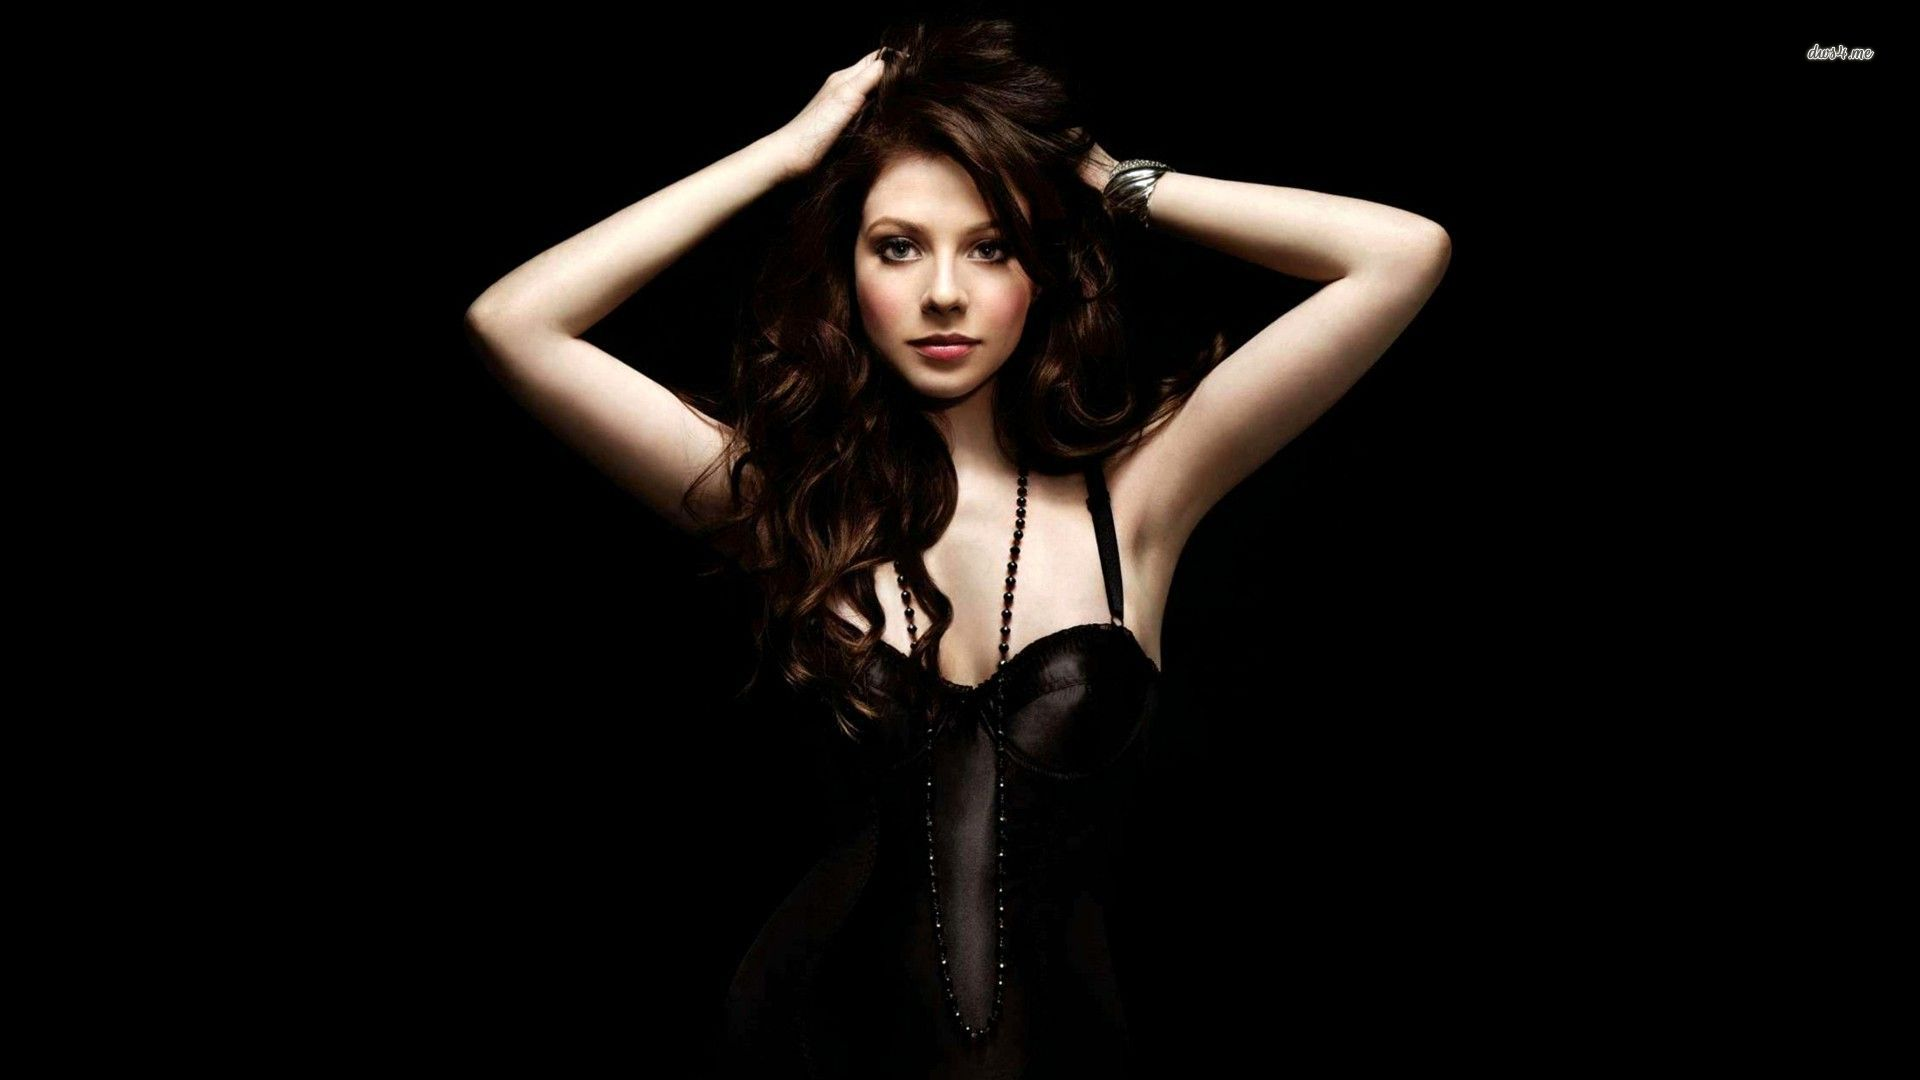 25 hd michelle trachtenberg - photo #26